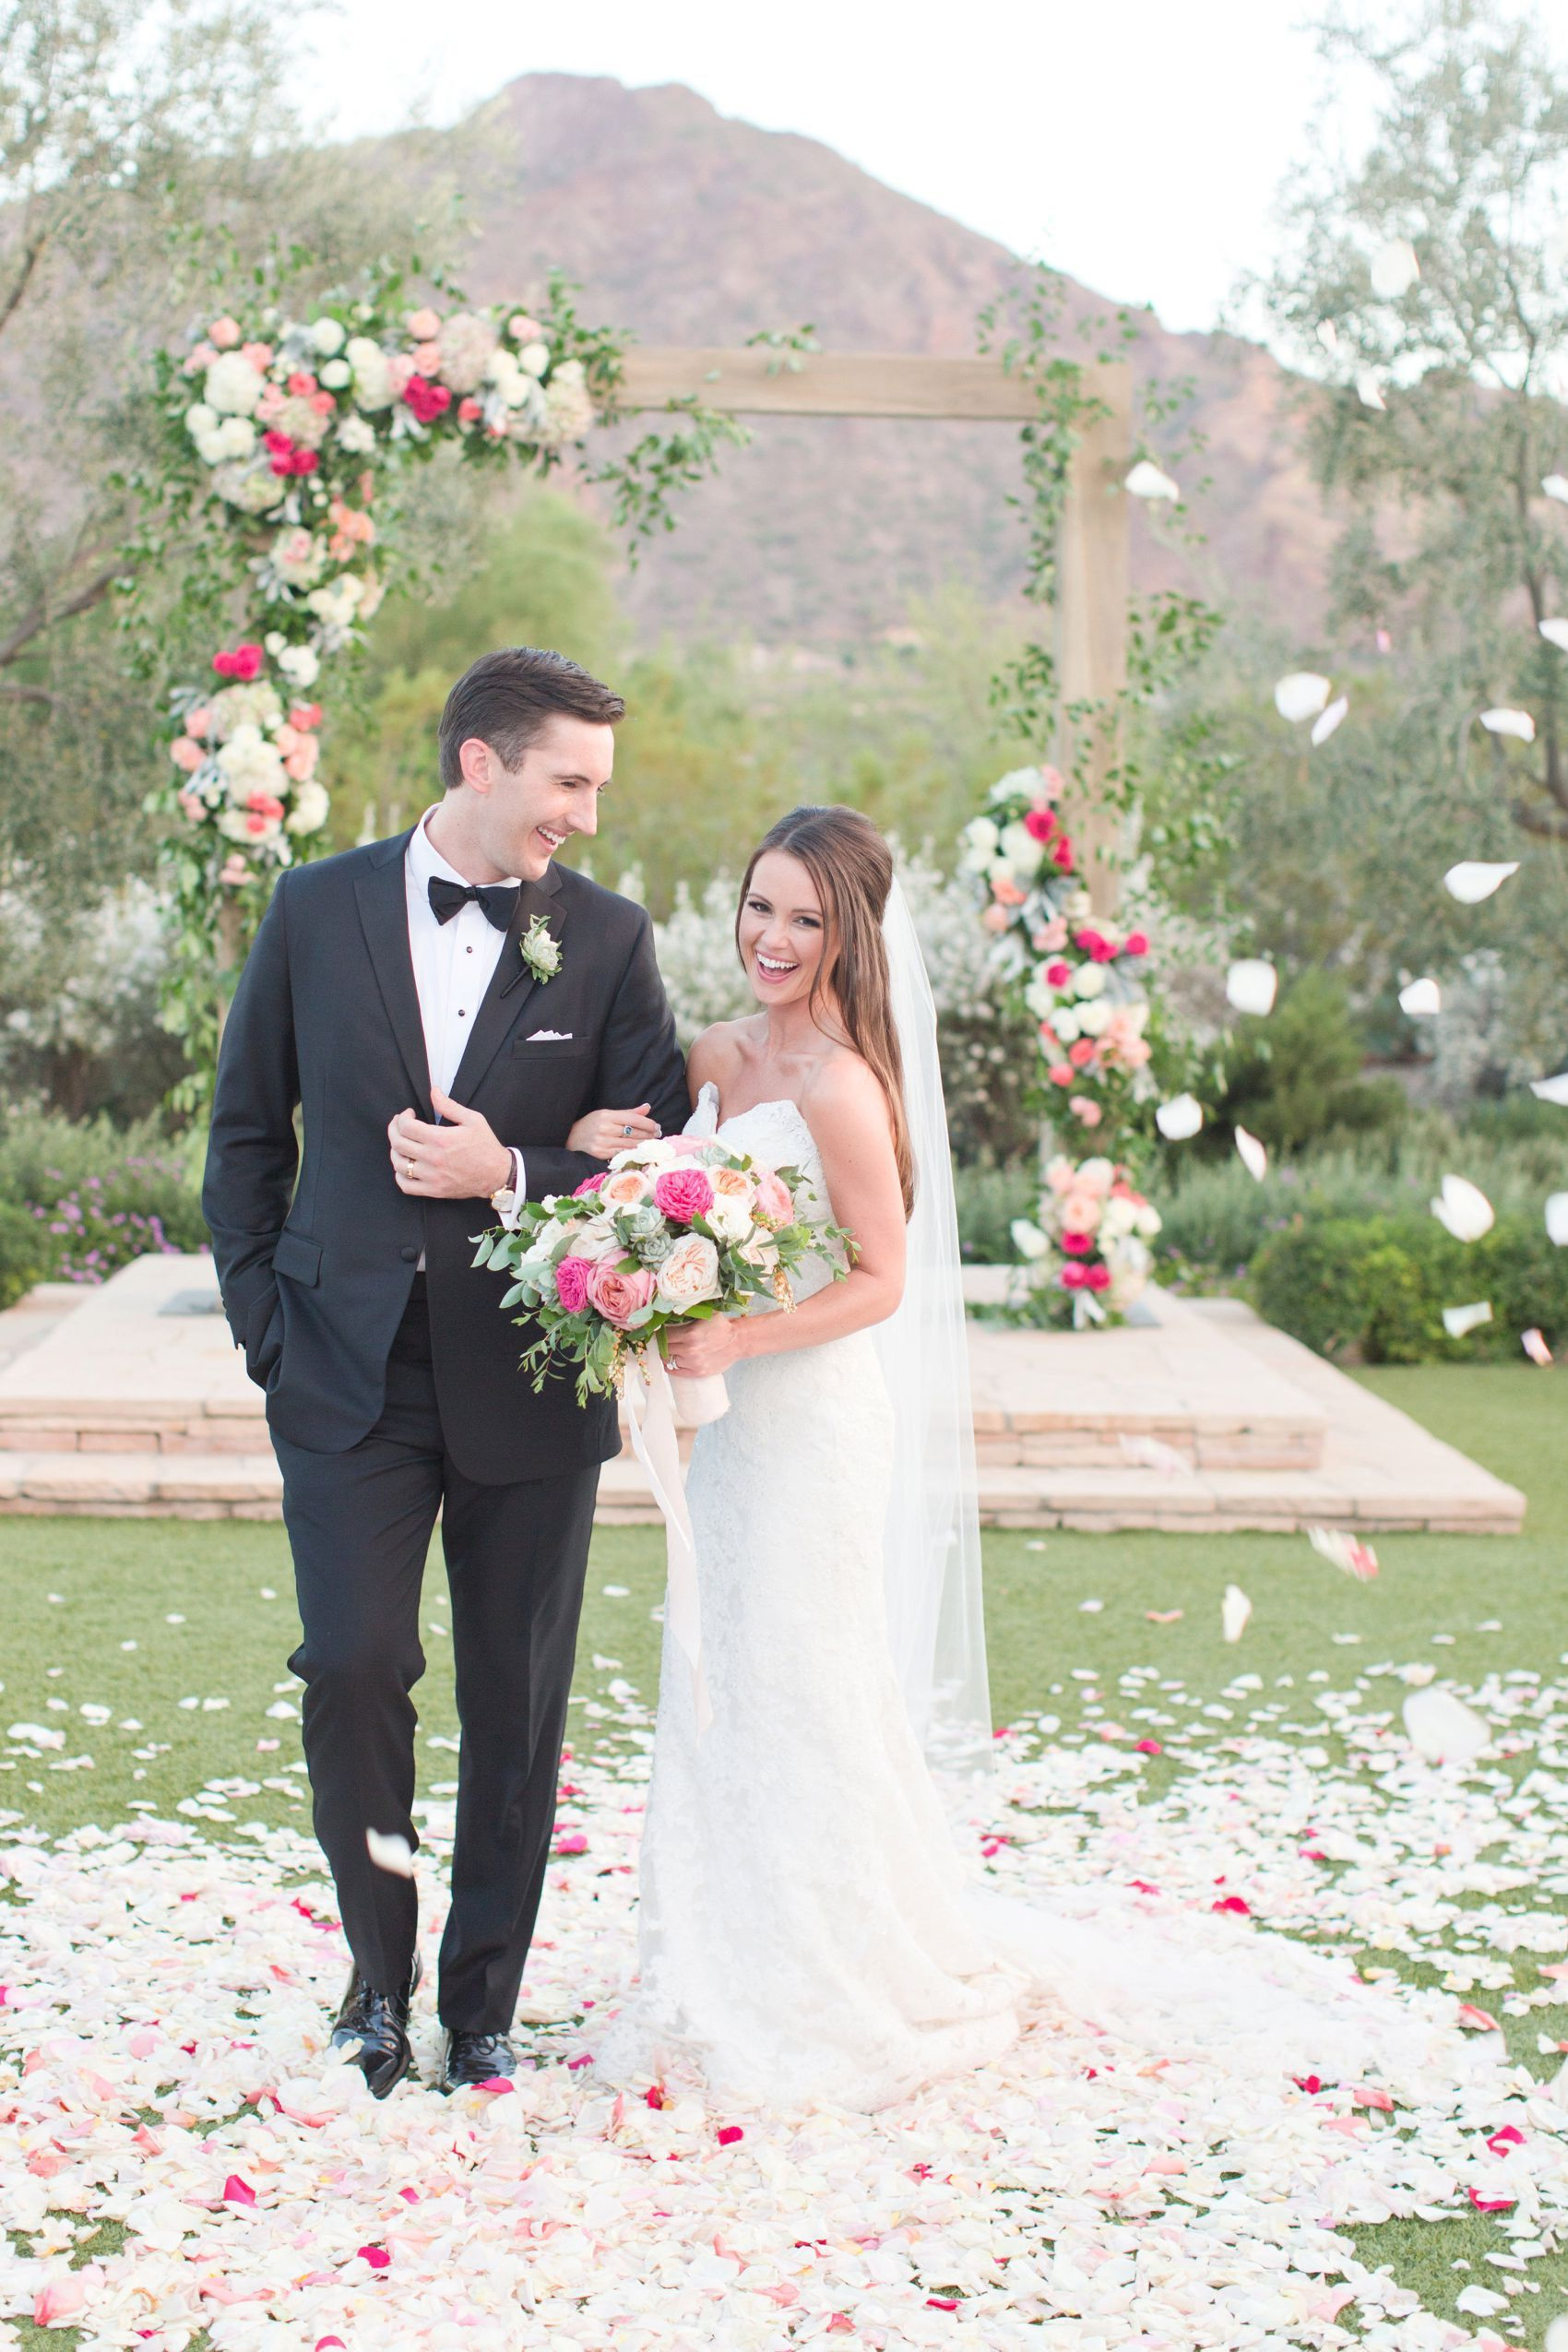 Gorgeous French blue wedding with pops of blush pink and fuchsia. Exquisite floral details, including a floral wrapped alter where they said their vows. This wedding, at one of Arizona's top lush venues, was perfection including a runway of petals for the bride's procession.